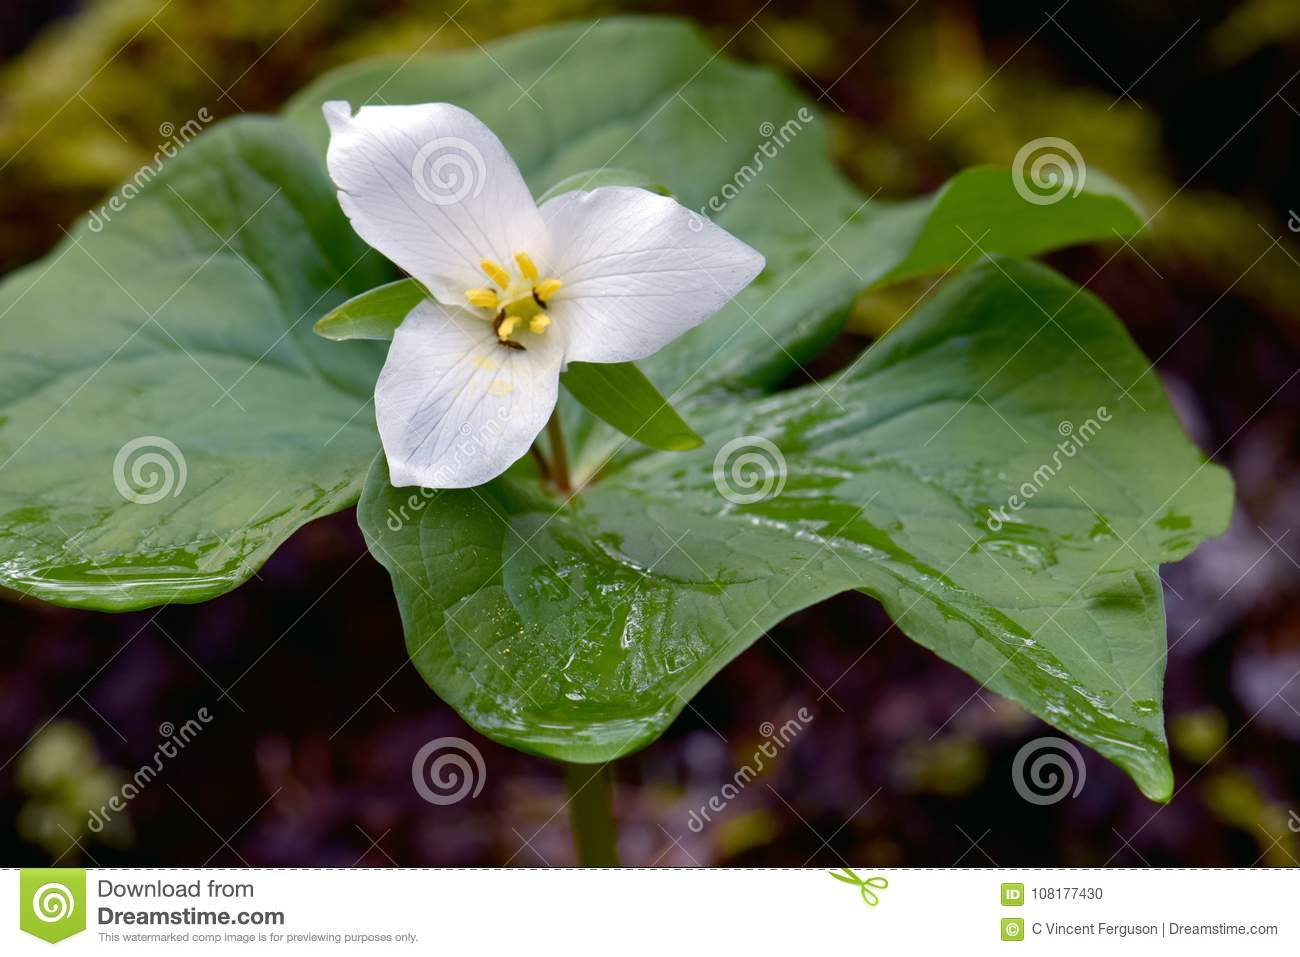 White trillium flower detail stock photo image of grandiflorum white trillium flower with green leaves yellow anthers wet with morning dew mightylinksfo